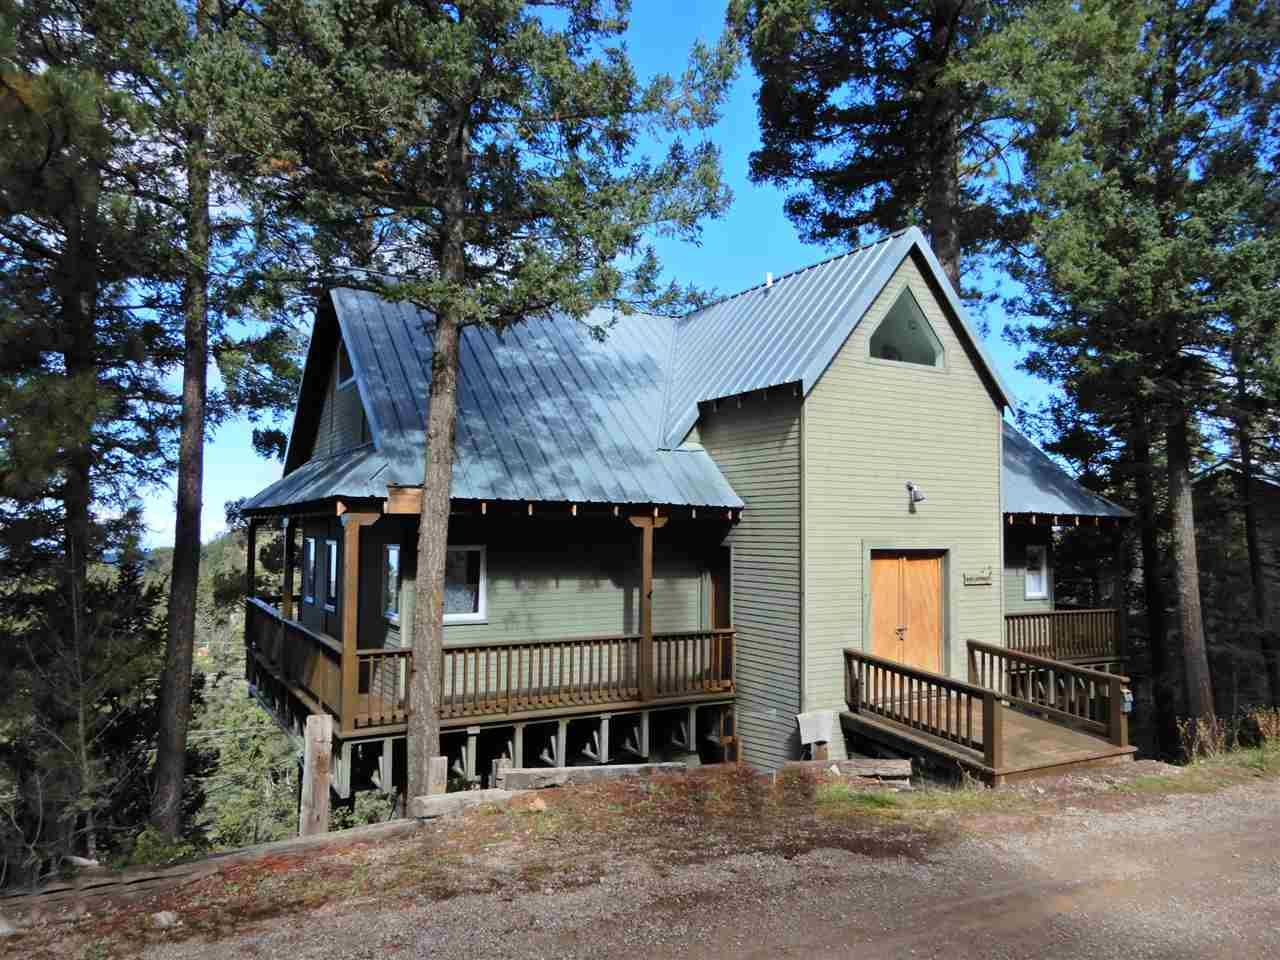 cloudcroft sale dsc in cabins perfect get edit min cabin away houses for